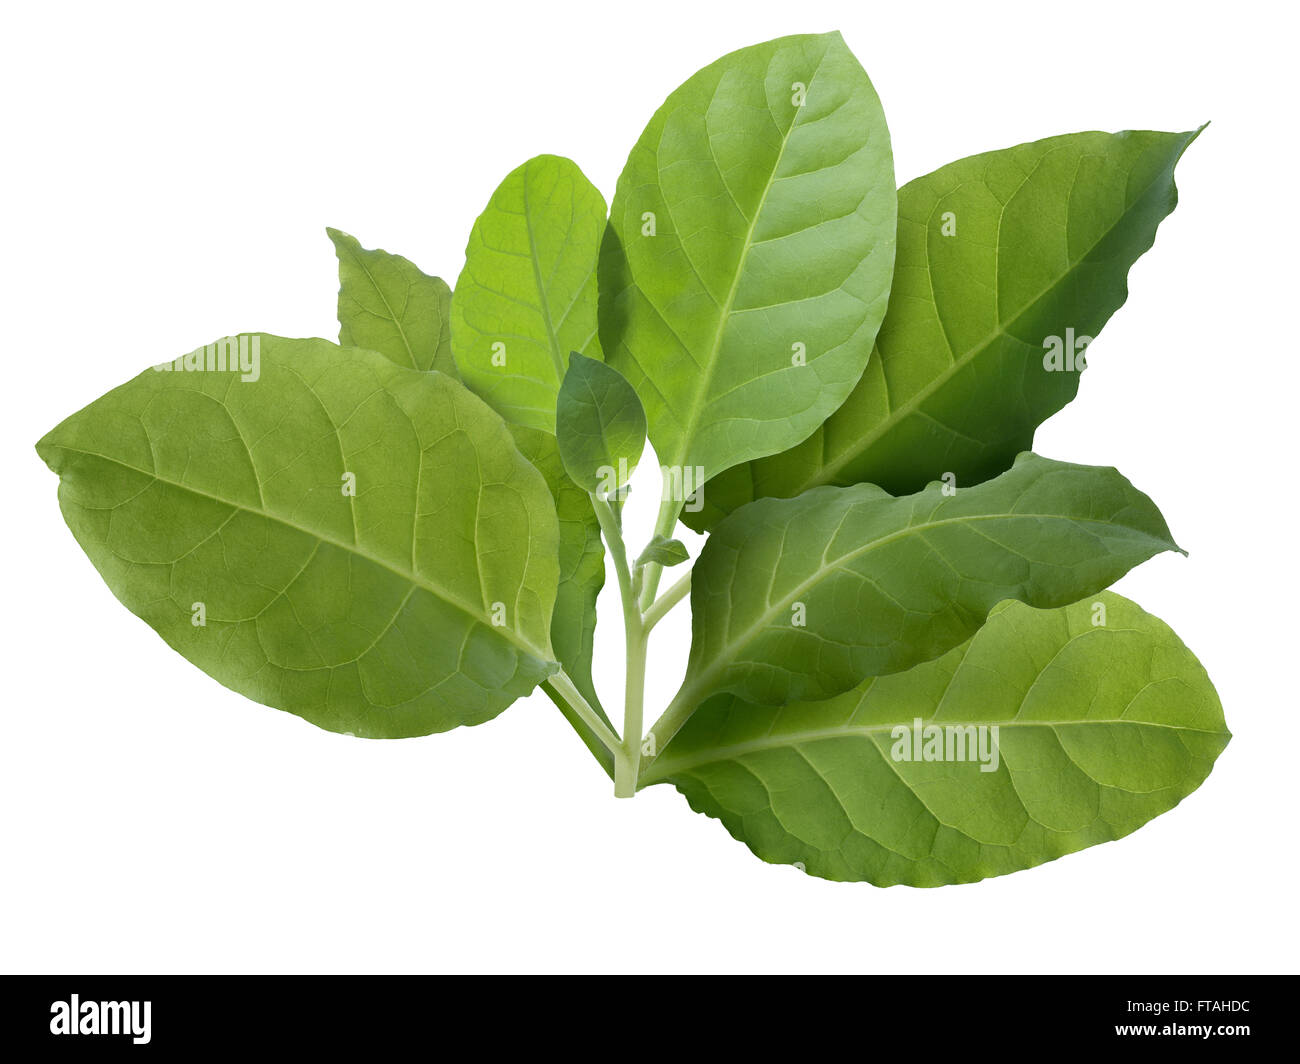 Tobacco leaves (Nicotiana tabacum), Viriginia variety. Infinite depth of field, clipping path - Stock Image